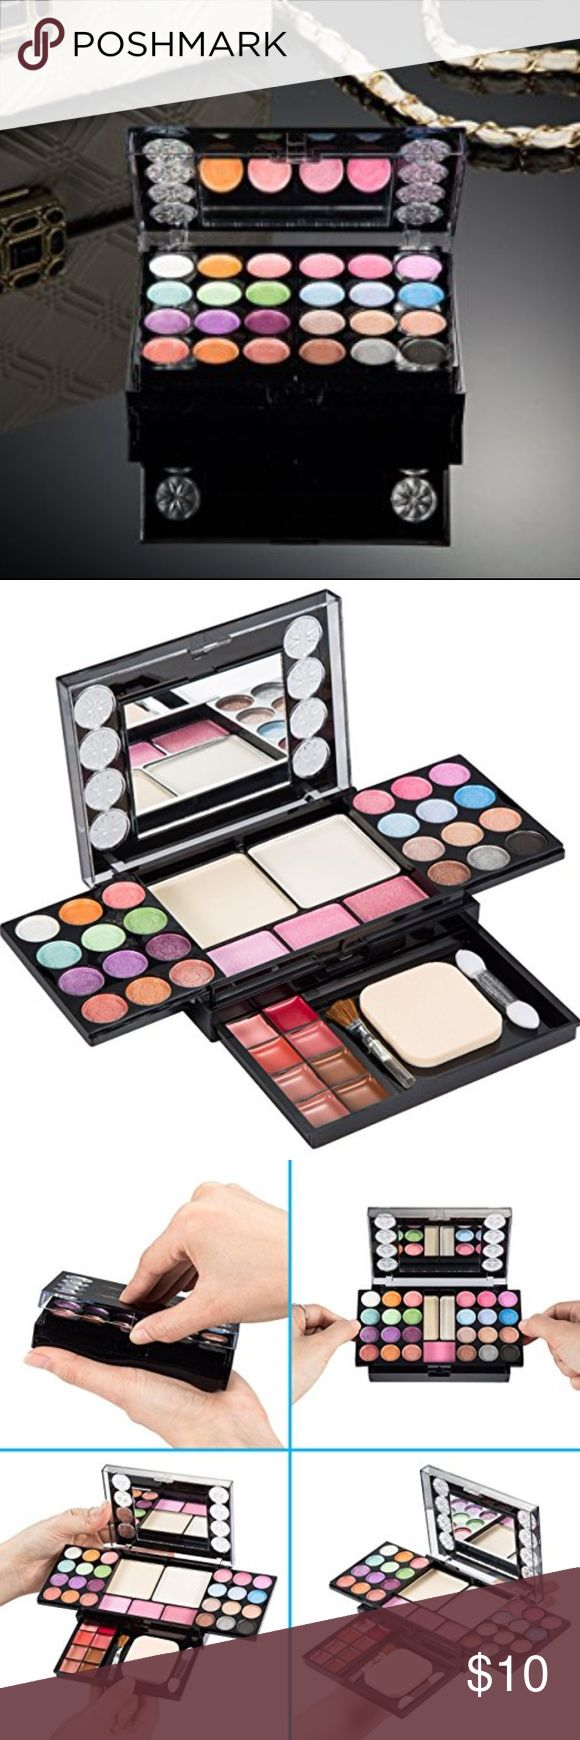 Eyeshadow Palette with 37 Colors/Lip Gloss/Brushes Meet All Your Makeup Needs! This eyeshadow palette comes with 24 matte and shimmer eyeshadow colors, 8 lip glosses, 3 blushes, 2 pressed powder and 3 makeup brush tools. Covers all your makeup needs! Just open the makeup kit and pull the layers out to start. No matter if you are professional artist or beginner, it is a must have in your dresser or small enough to put into your handbag or purse.This palette has passed the MSDS and non-toxic…